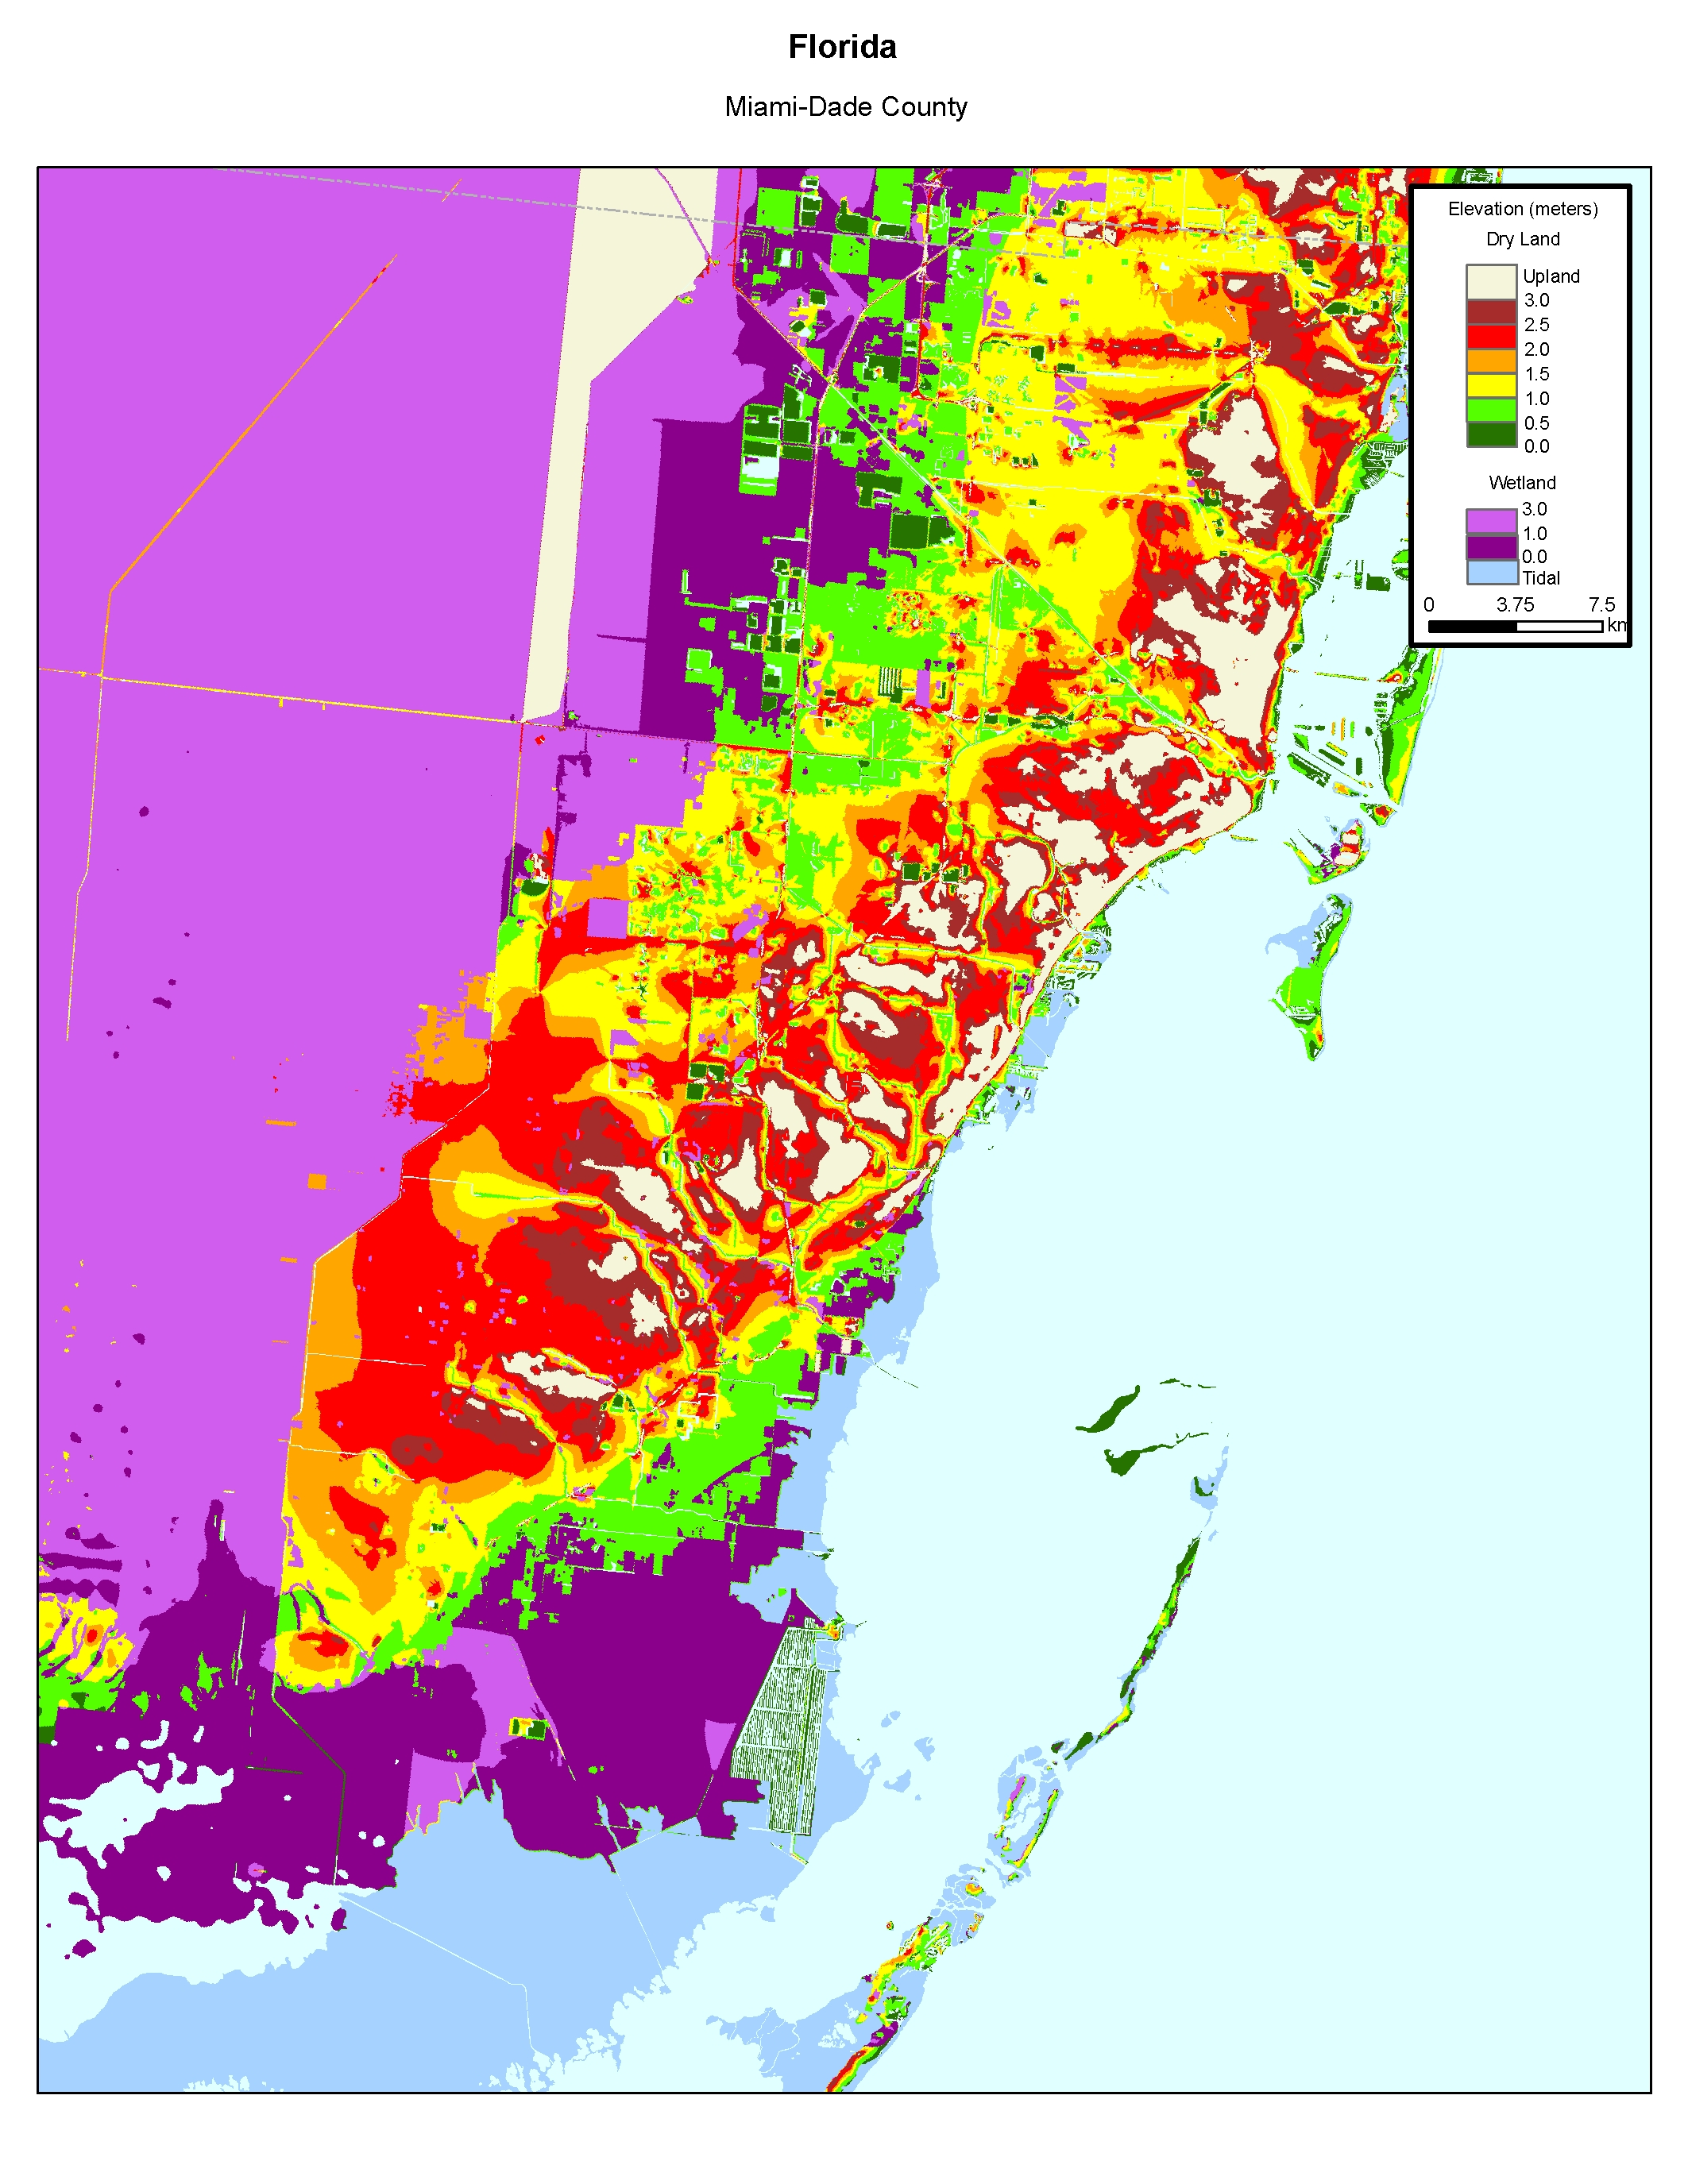 More Sea Level Rise Maps Of Floridas Atlantic Coast - Ground elevation map